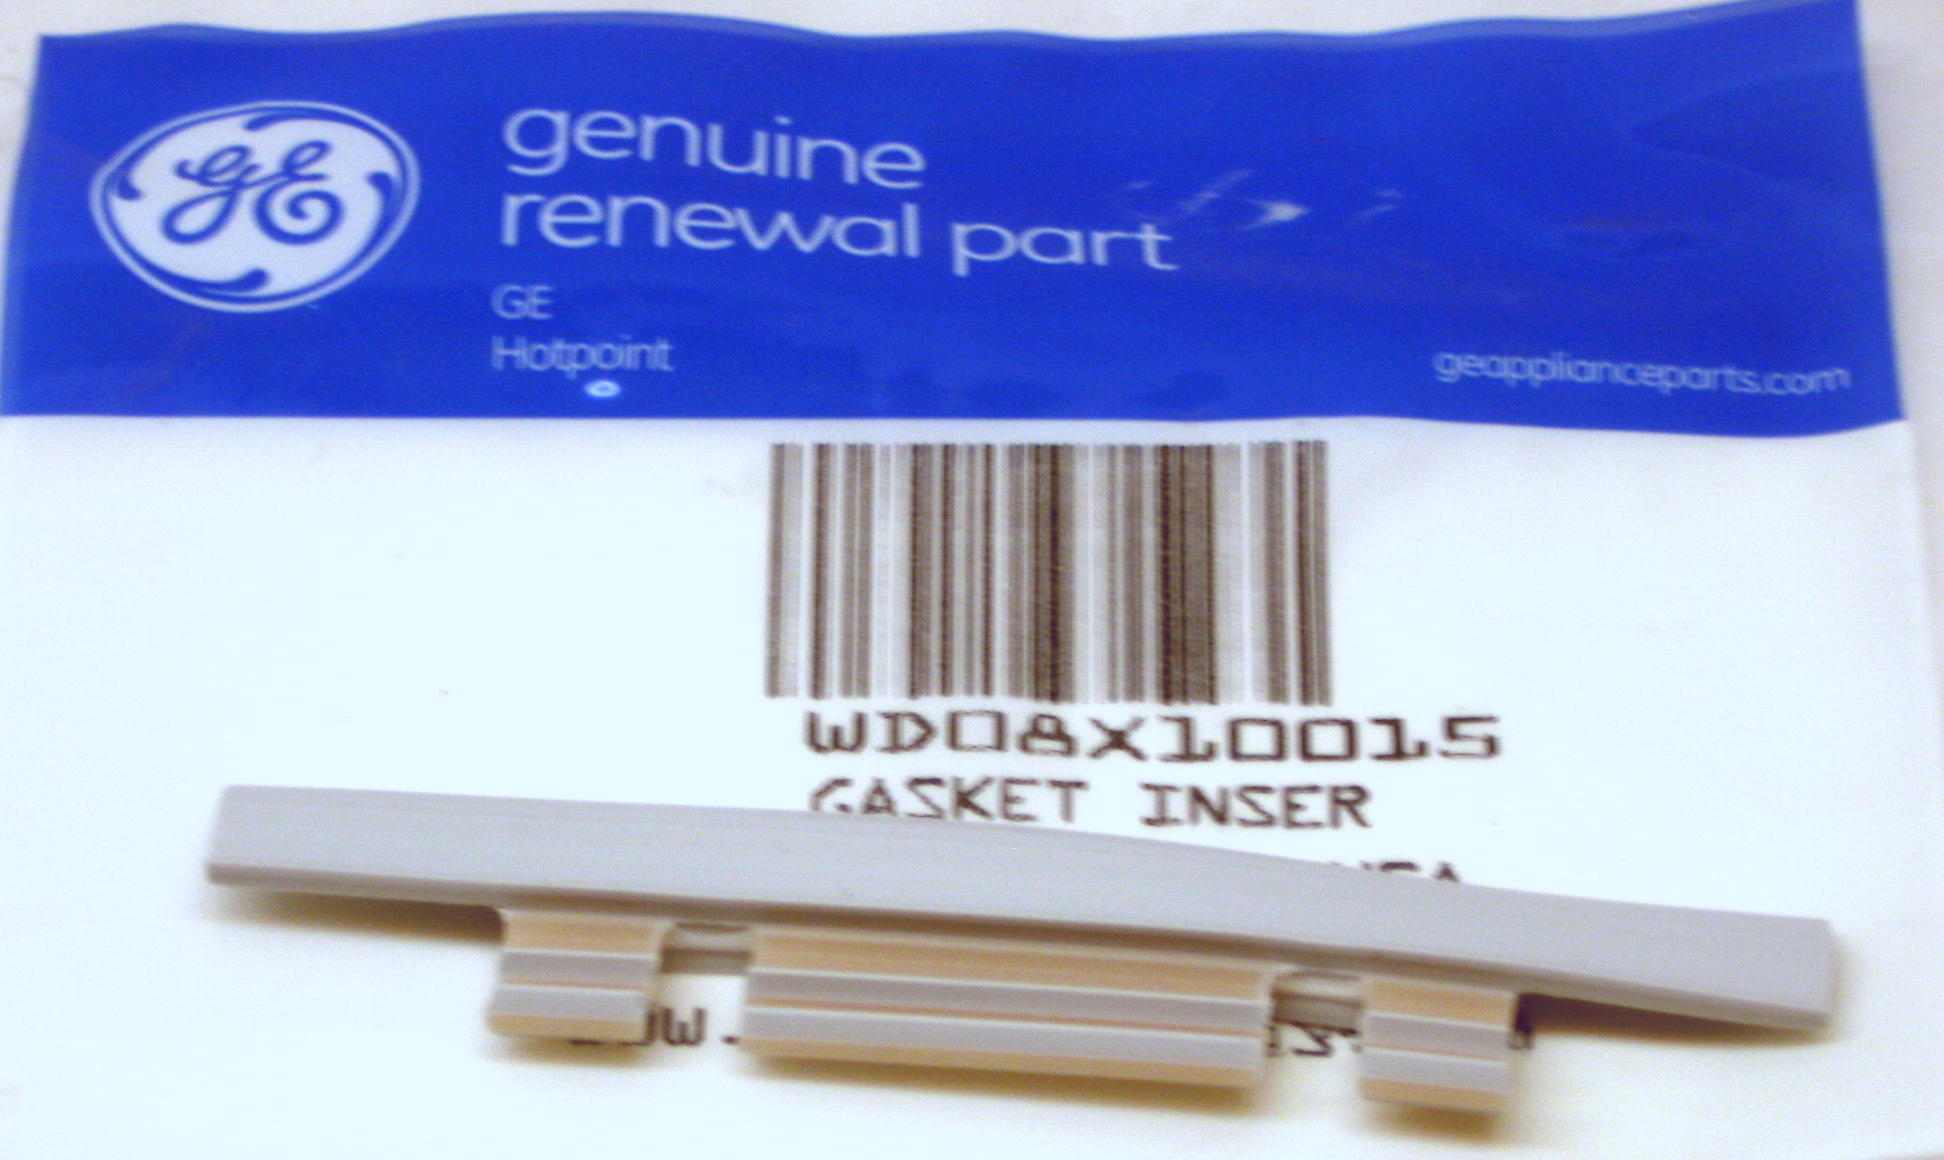 General Electric WD08X10015  Gasket Insert